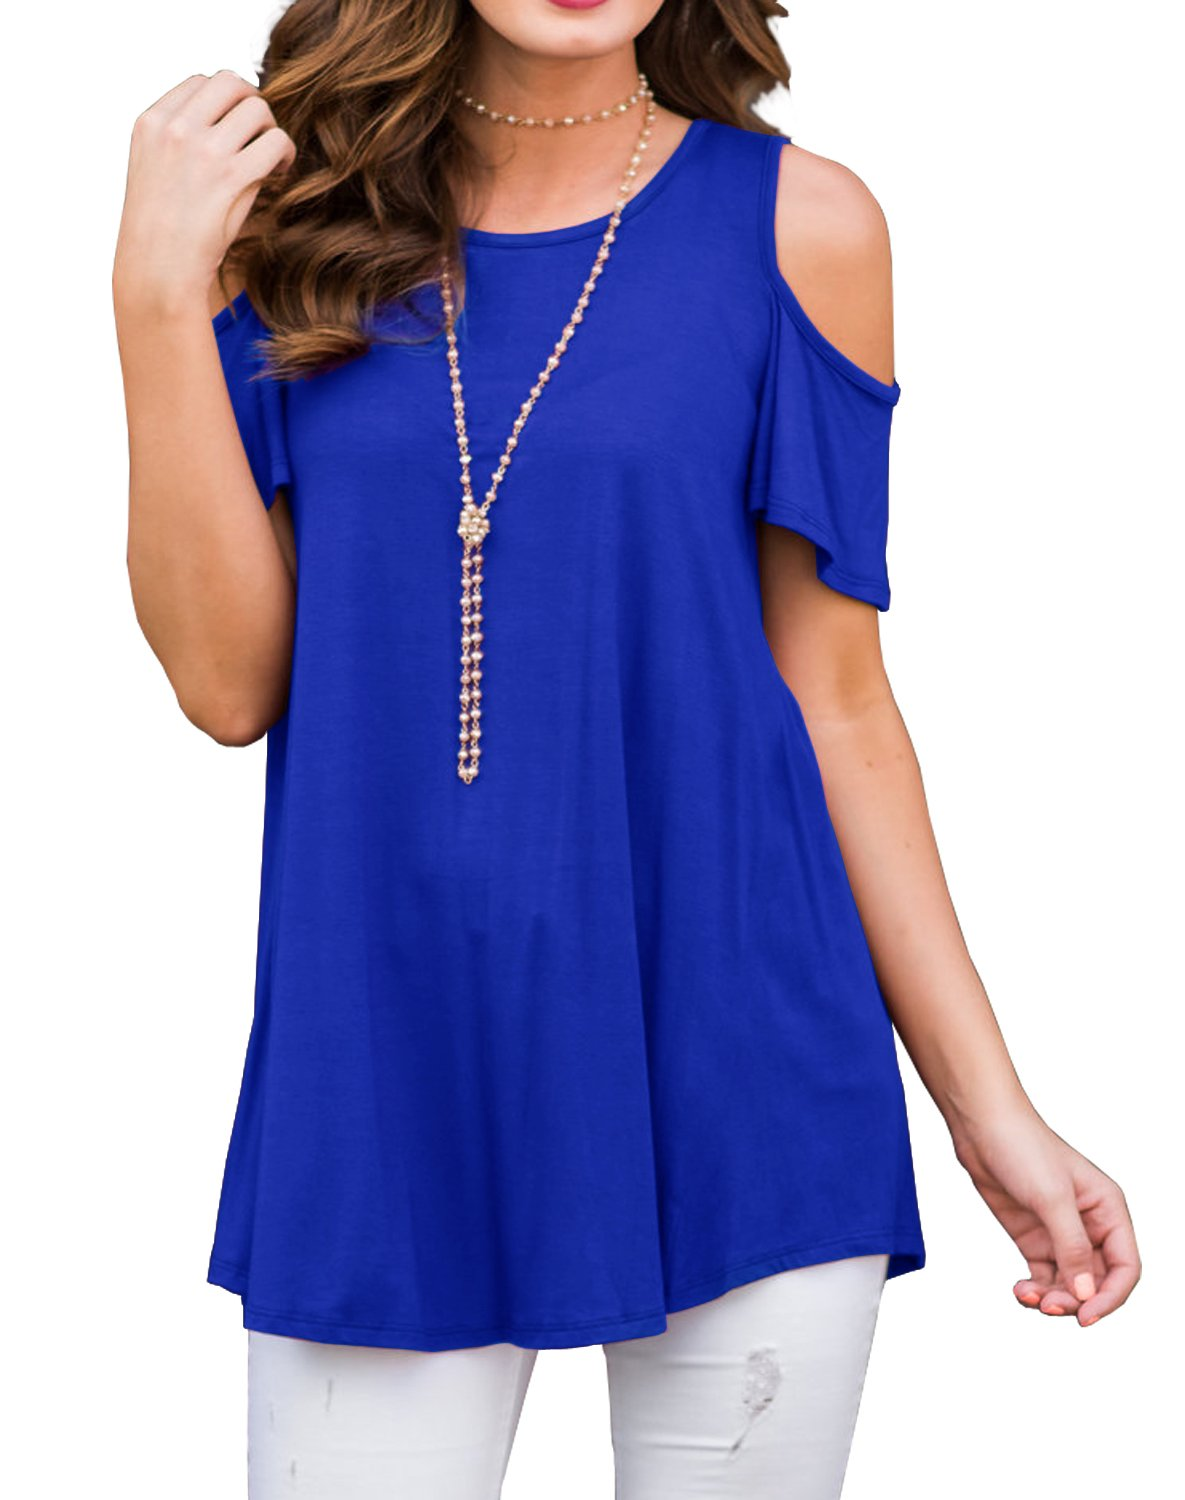 PrinStory Womens Short Sleeve Off Shoulder Round Neck Casual Loose Top Blouse T-Shirt Royal Blue-L